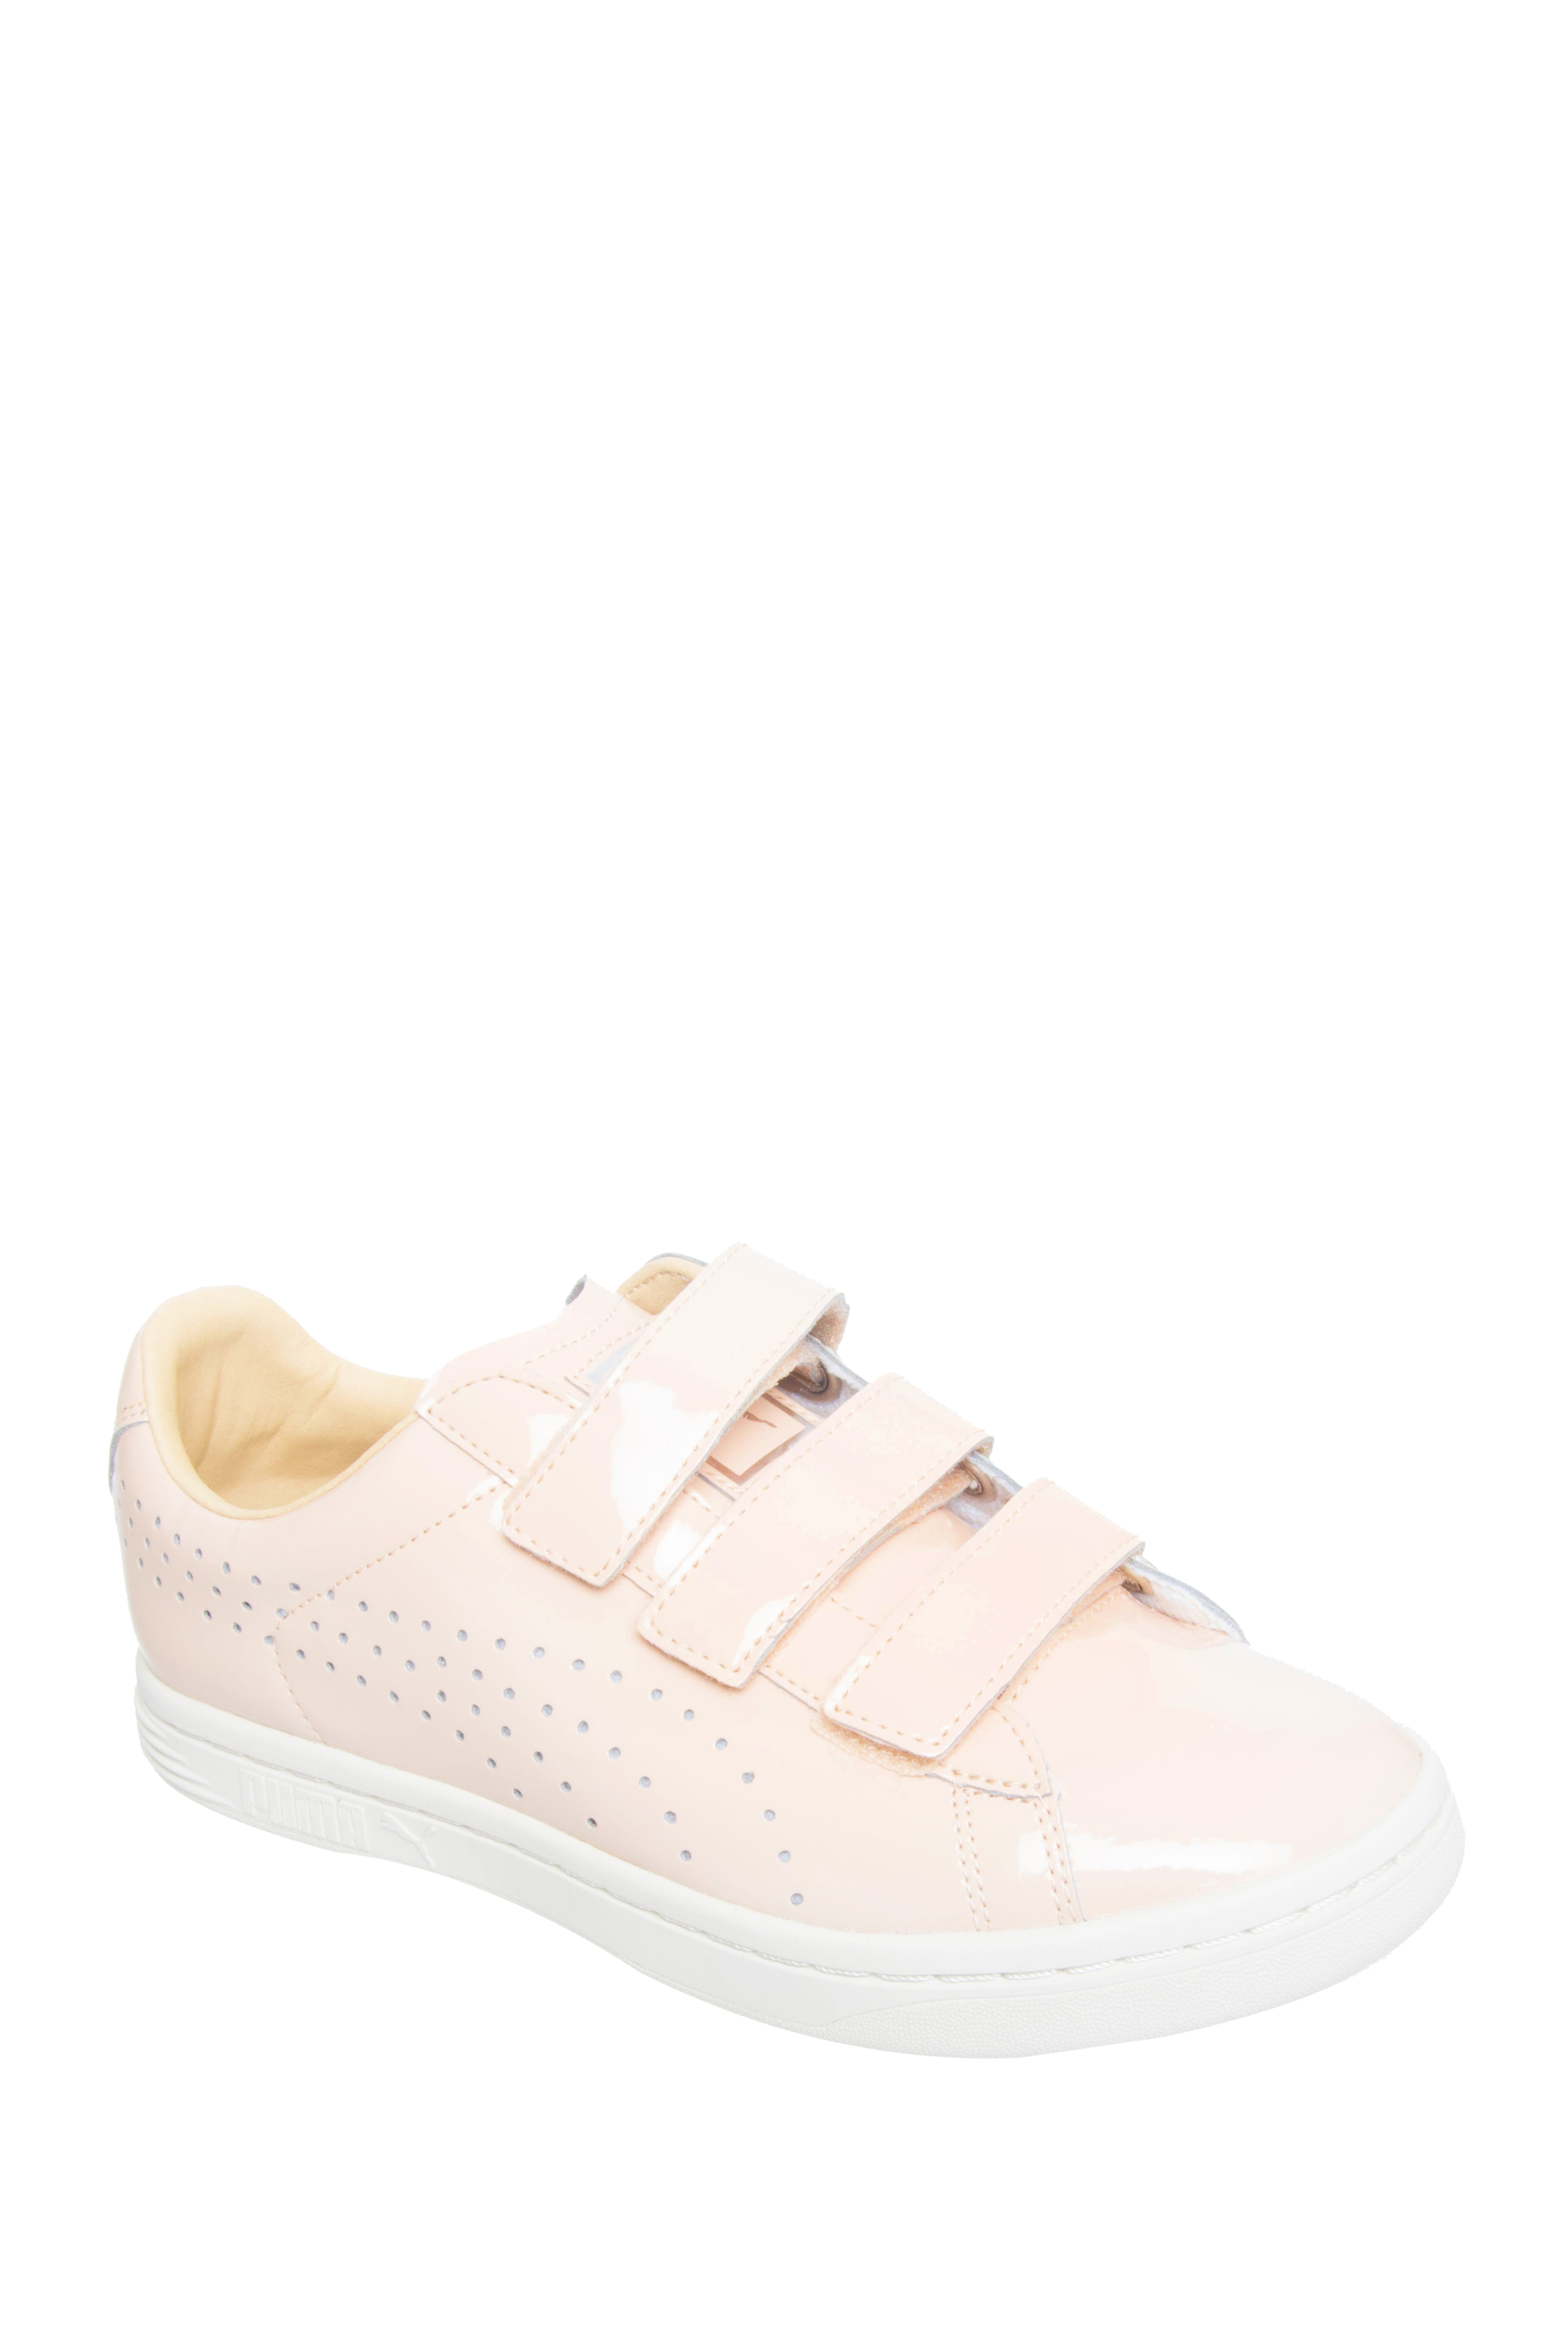 Puma Court Star Velcro Low Top Sneakers - Natural